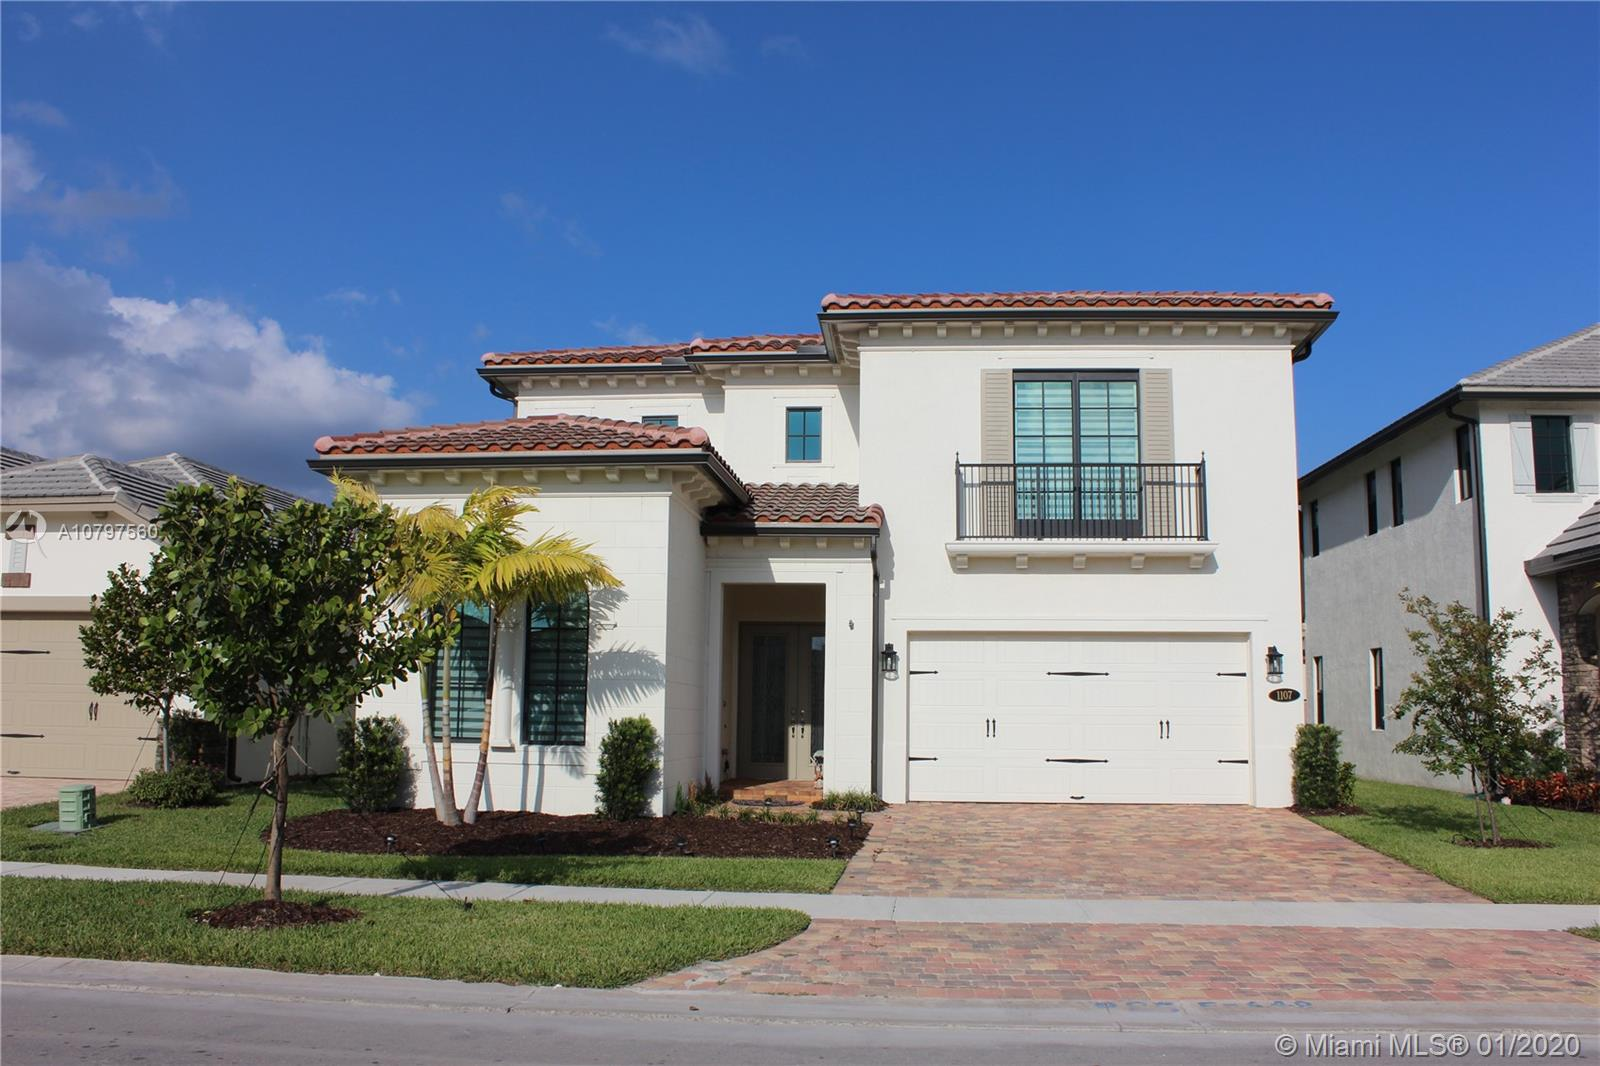 Property for sale at 1107 SW 113 way, Pembroke Pines,  Florida 33025